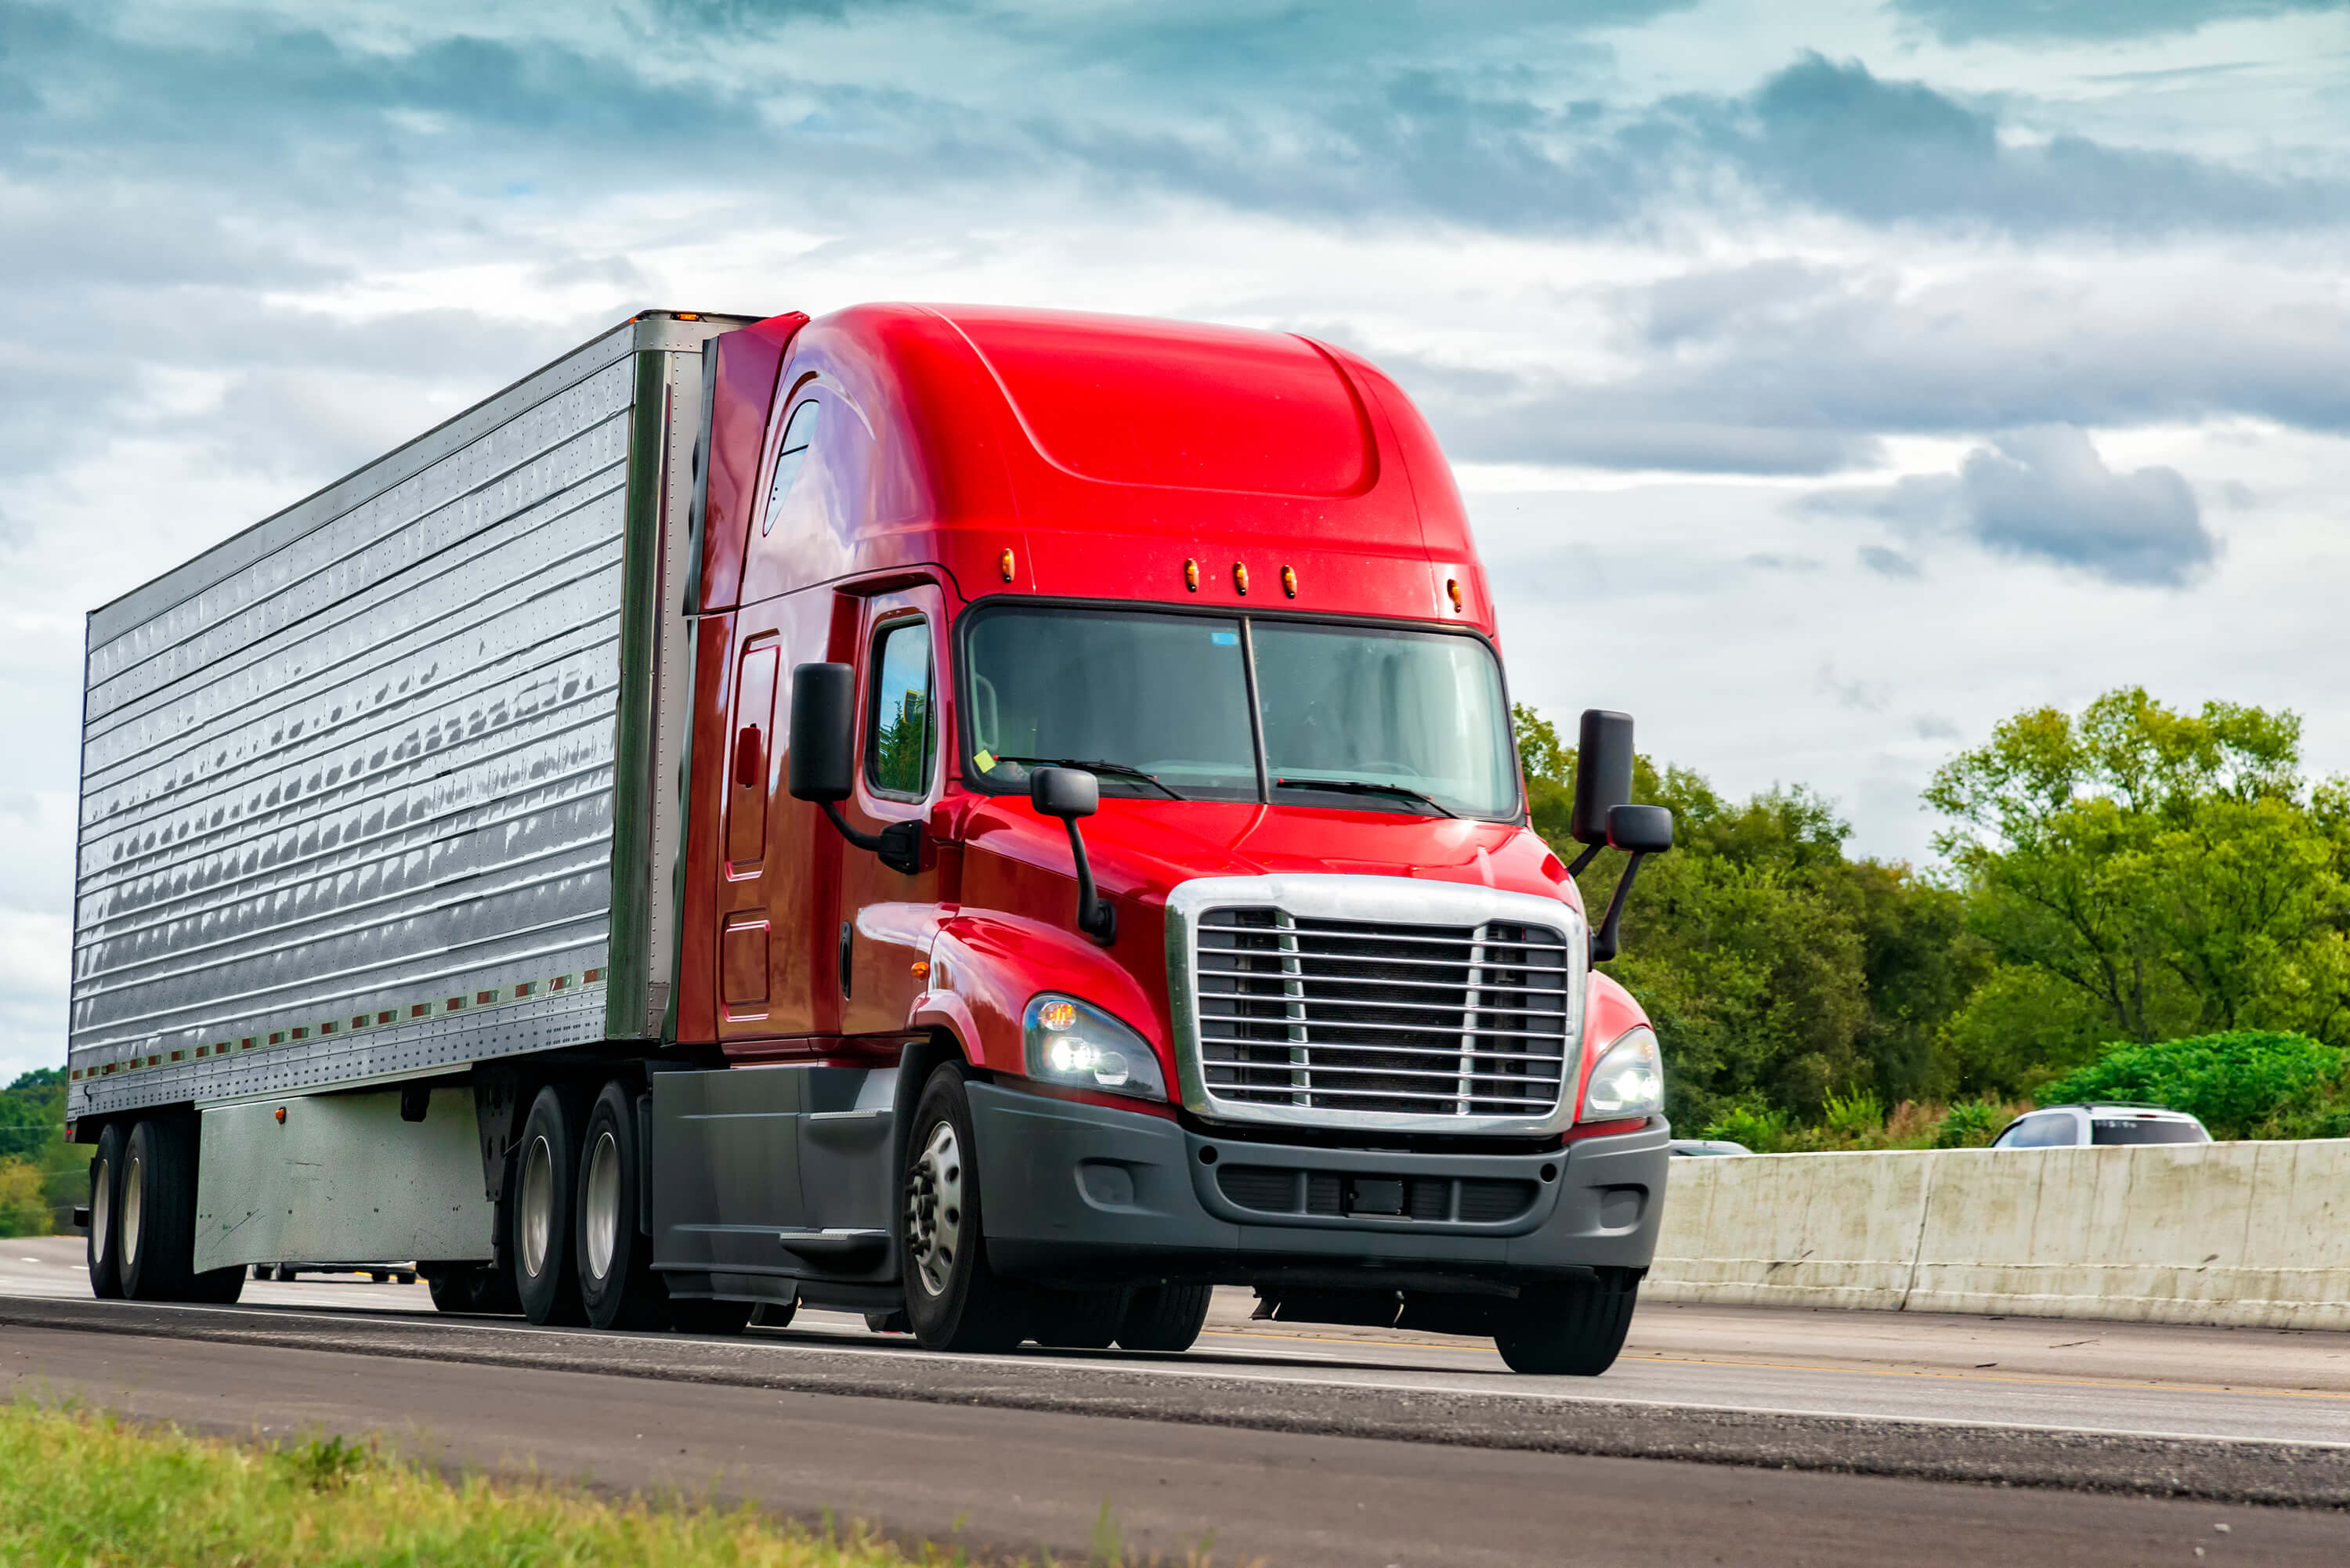 My.Attorney gives an overview of what are considered no-zones for large trucks.